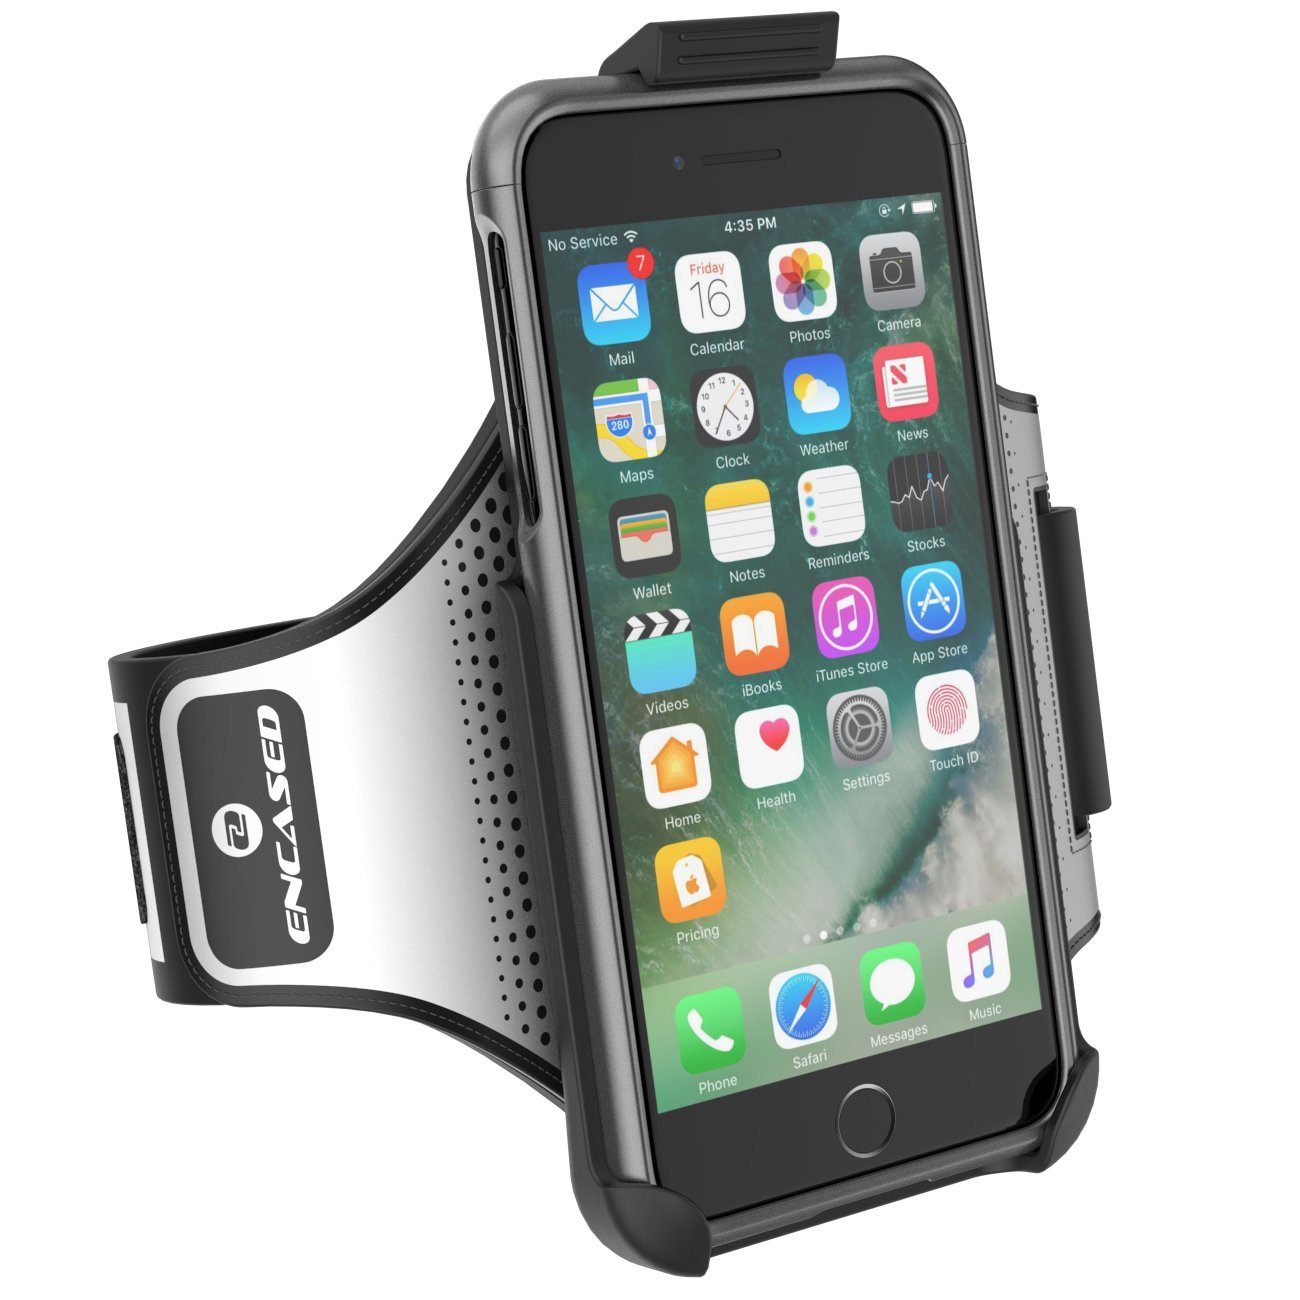 Details about iPhone 7 Plus Armband Gym Kit, Workout Armband + Sport Case  (2 pc set)